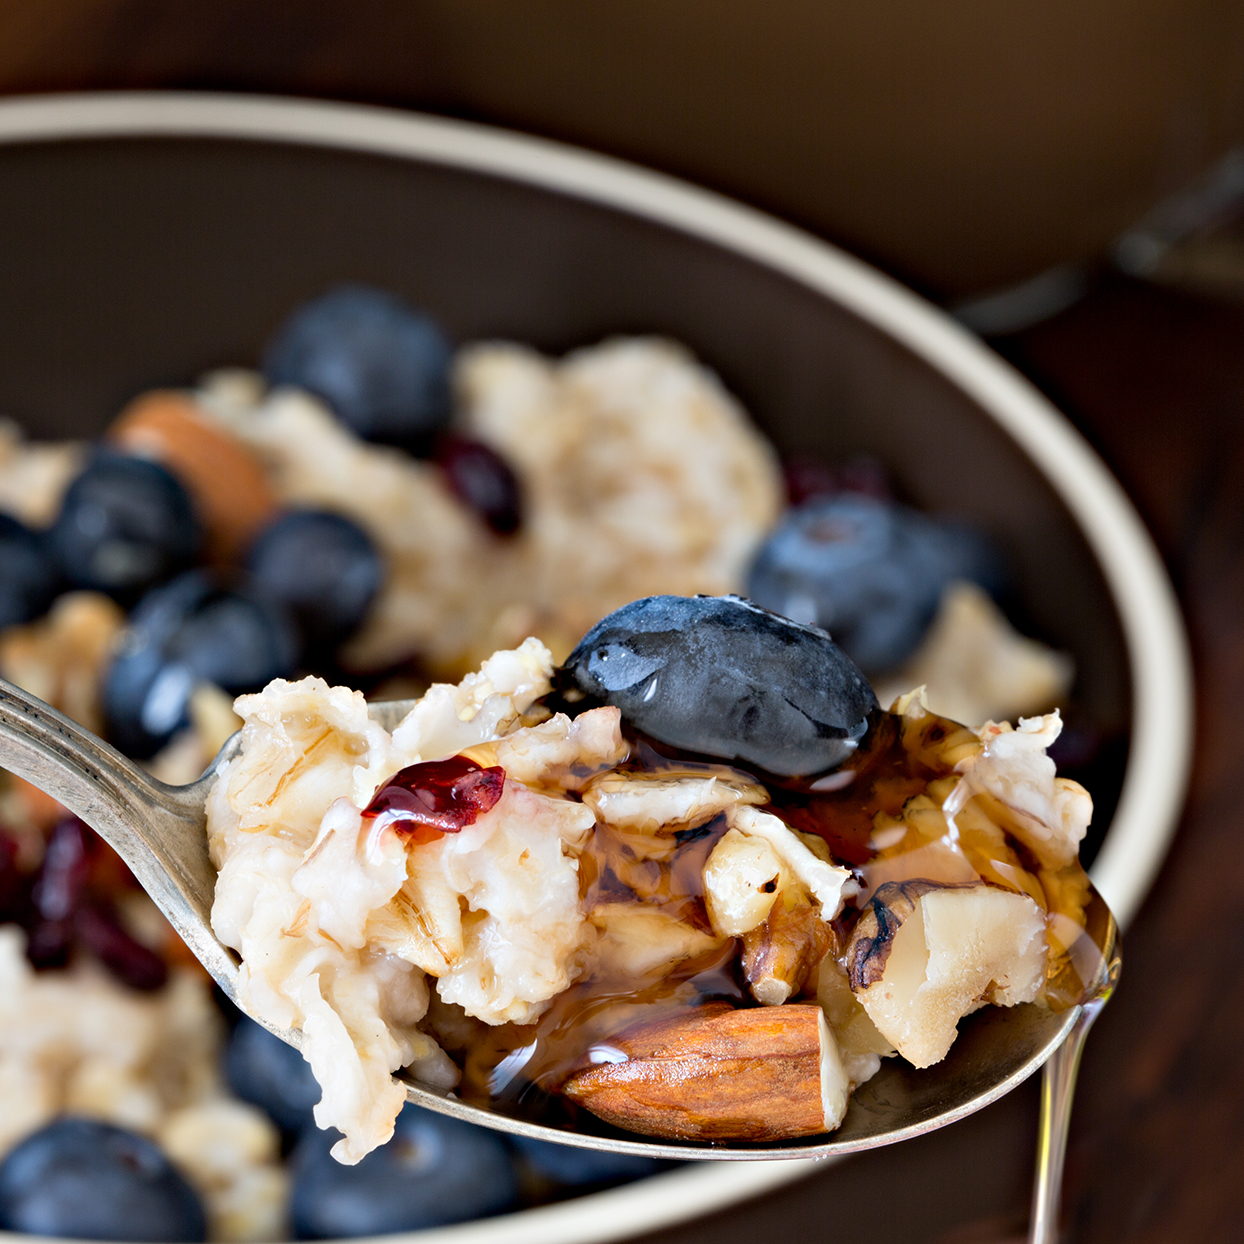 A high angle extreme close up of a spoonful of oatmeal, nuts, blueberry and maple syrup.